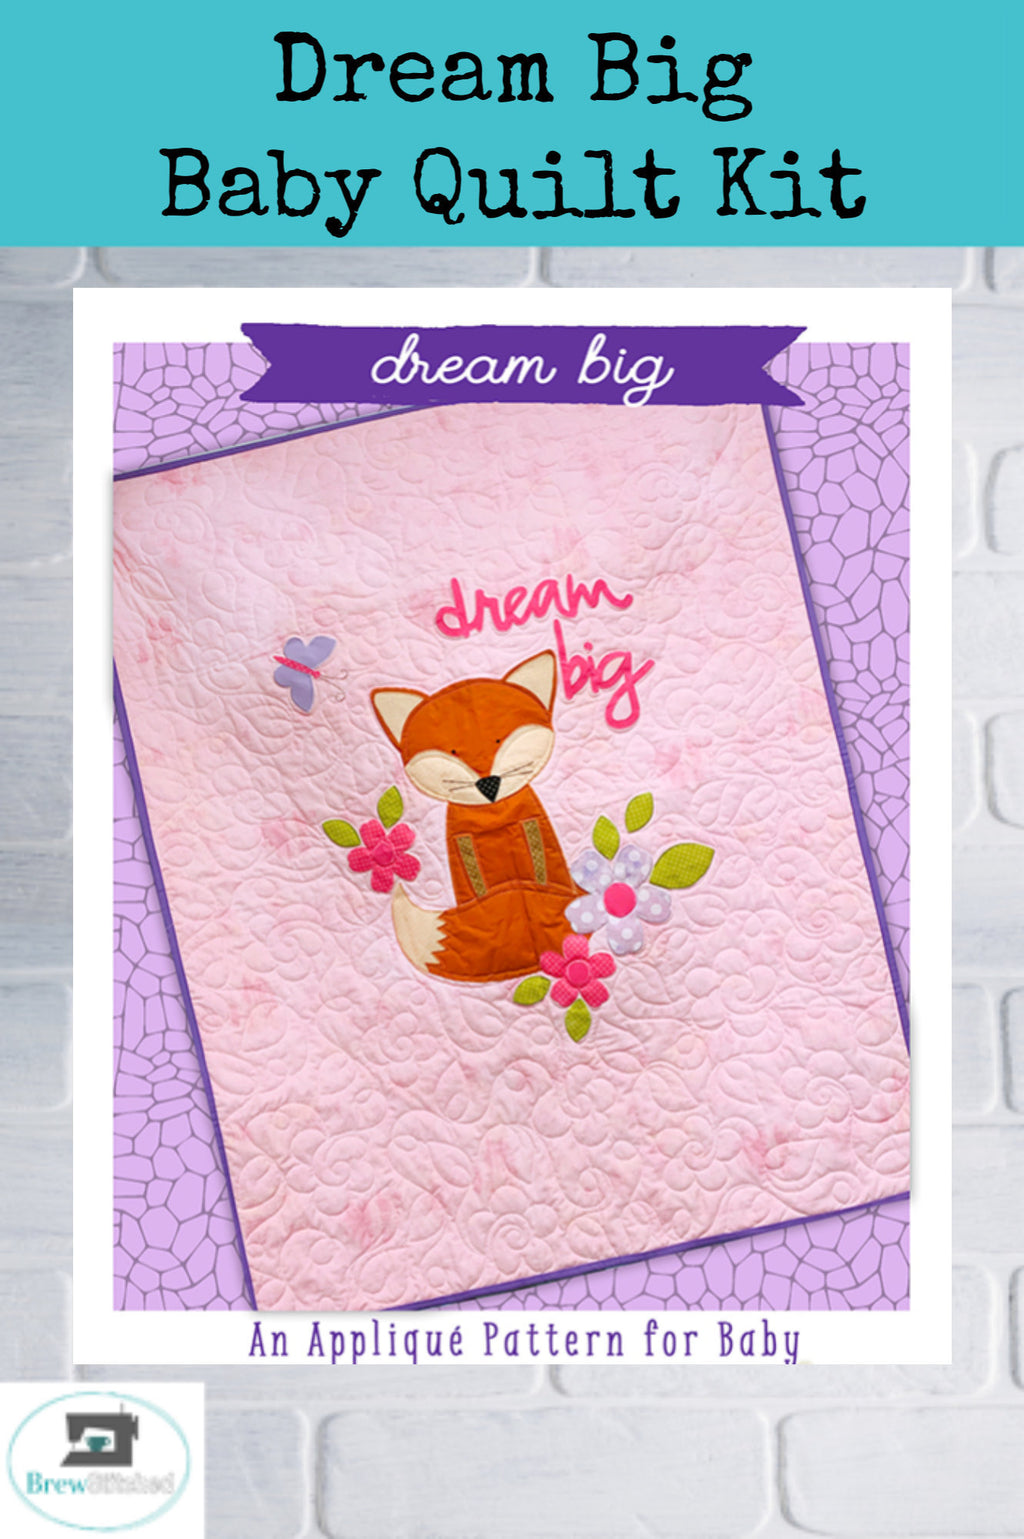 Dream Big Applique Baby Quilt Kit - brewstitched.com